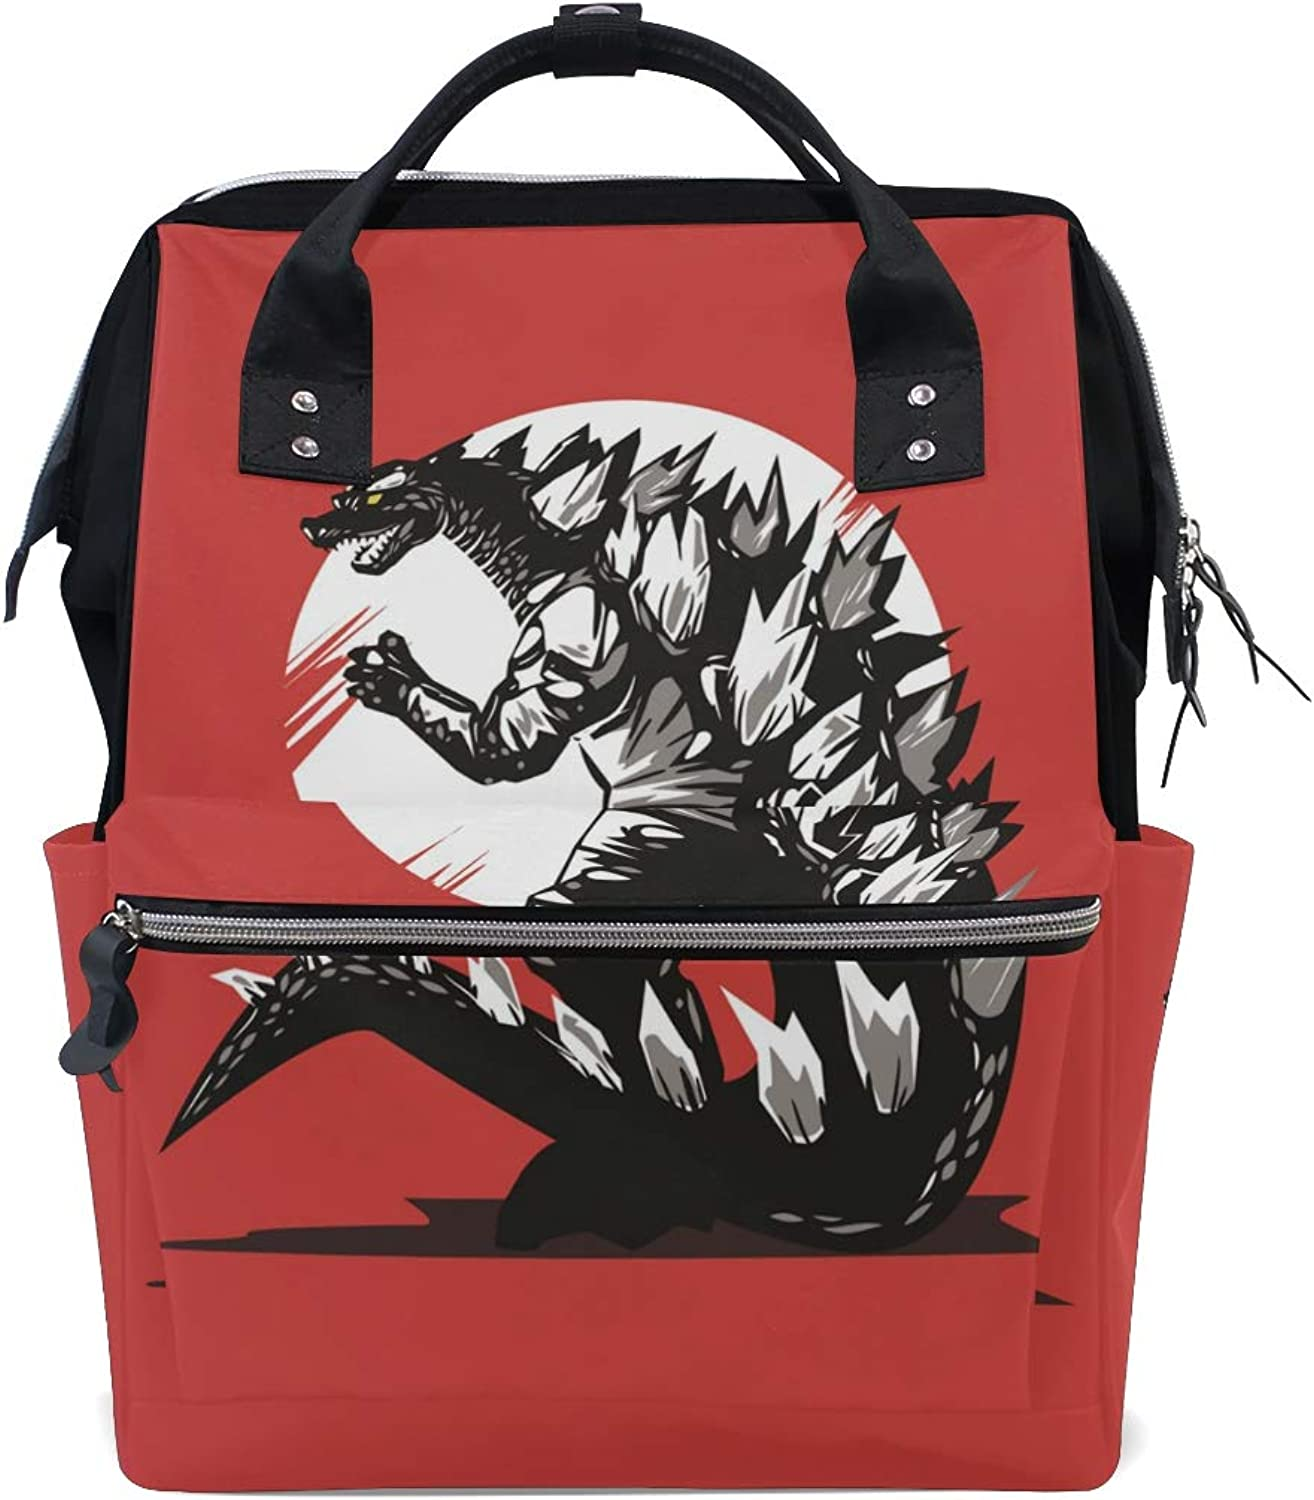 MONTOJ Vicious Godzilla Drawing Canvas Travel Bag Campus